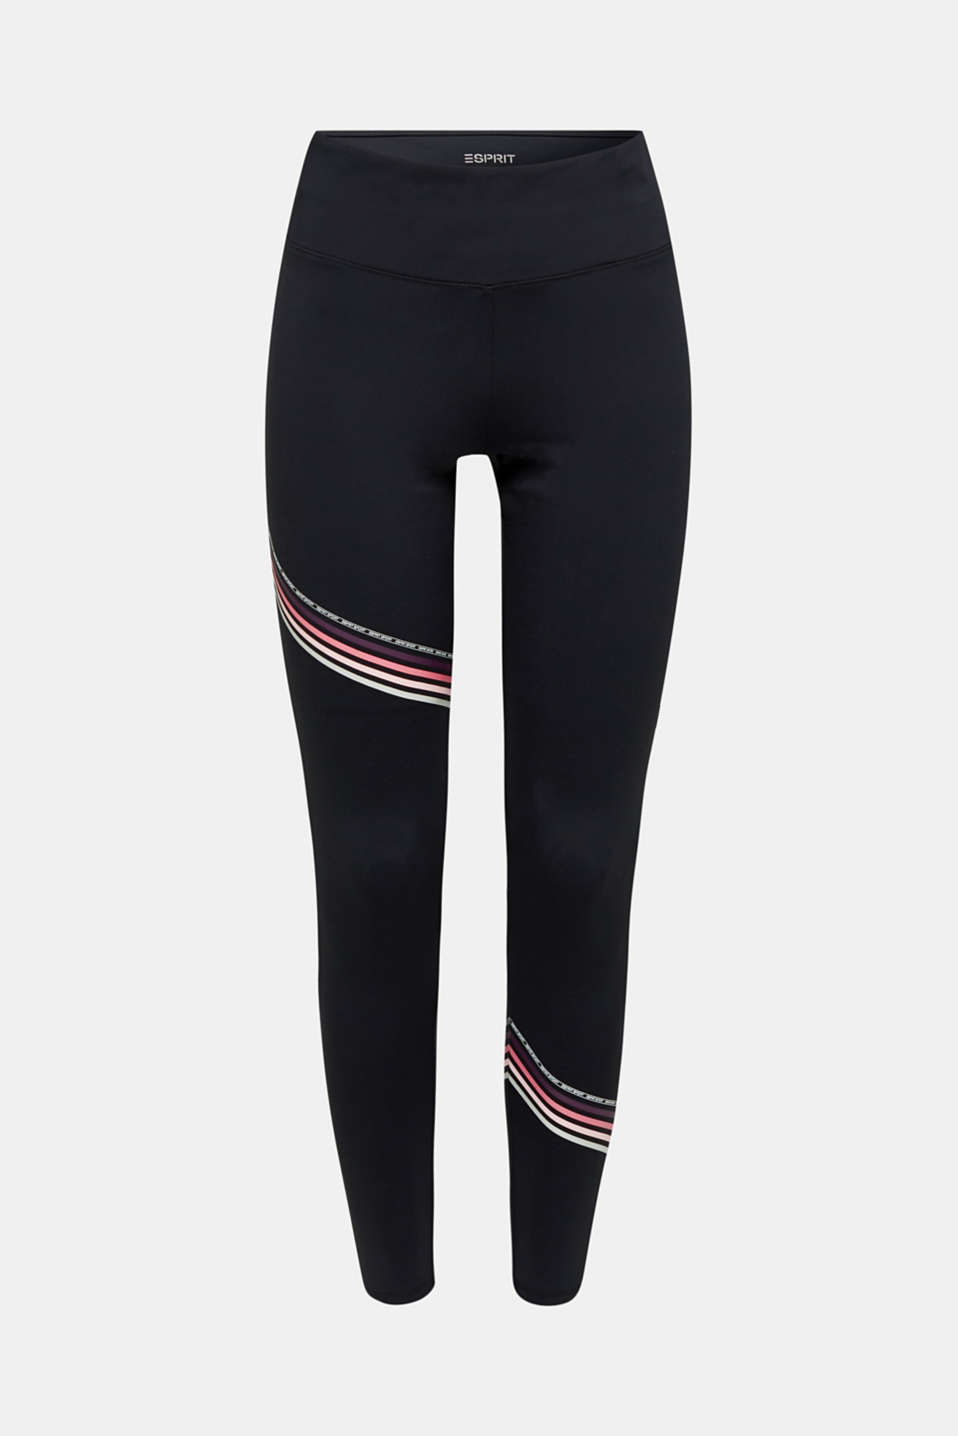 Compression leggings with stripes, E-DRY, BLACK, detail image number 5